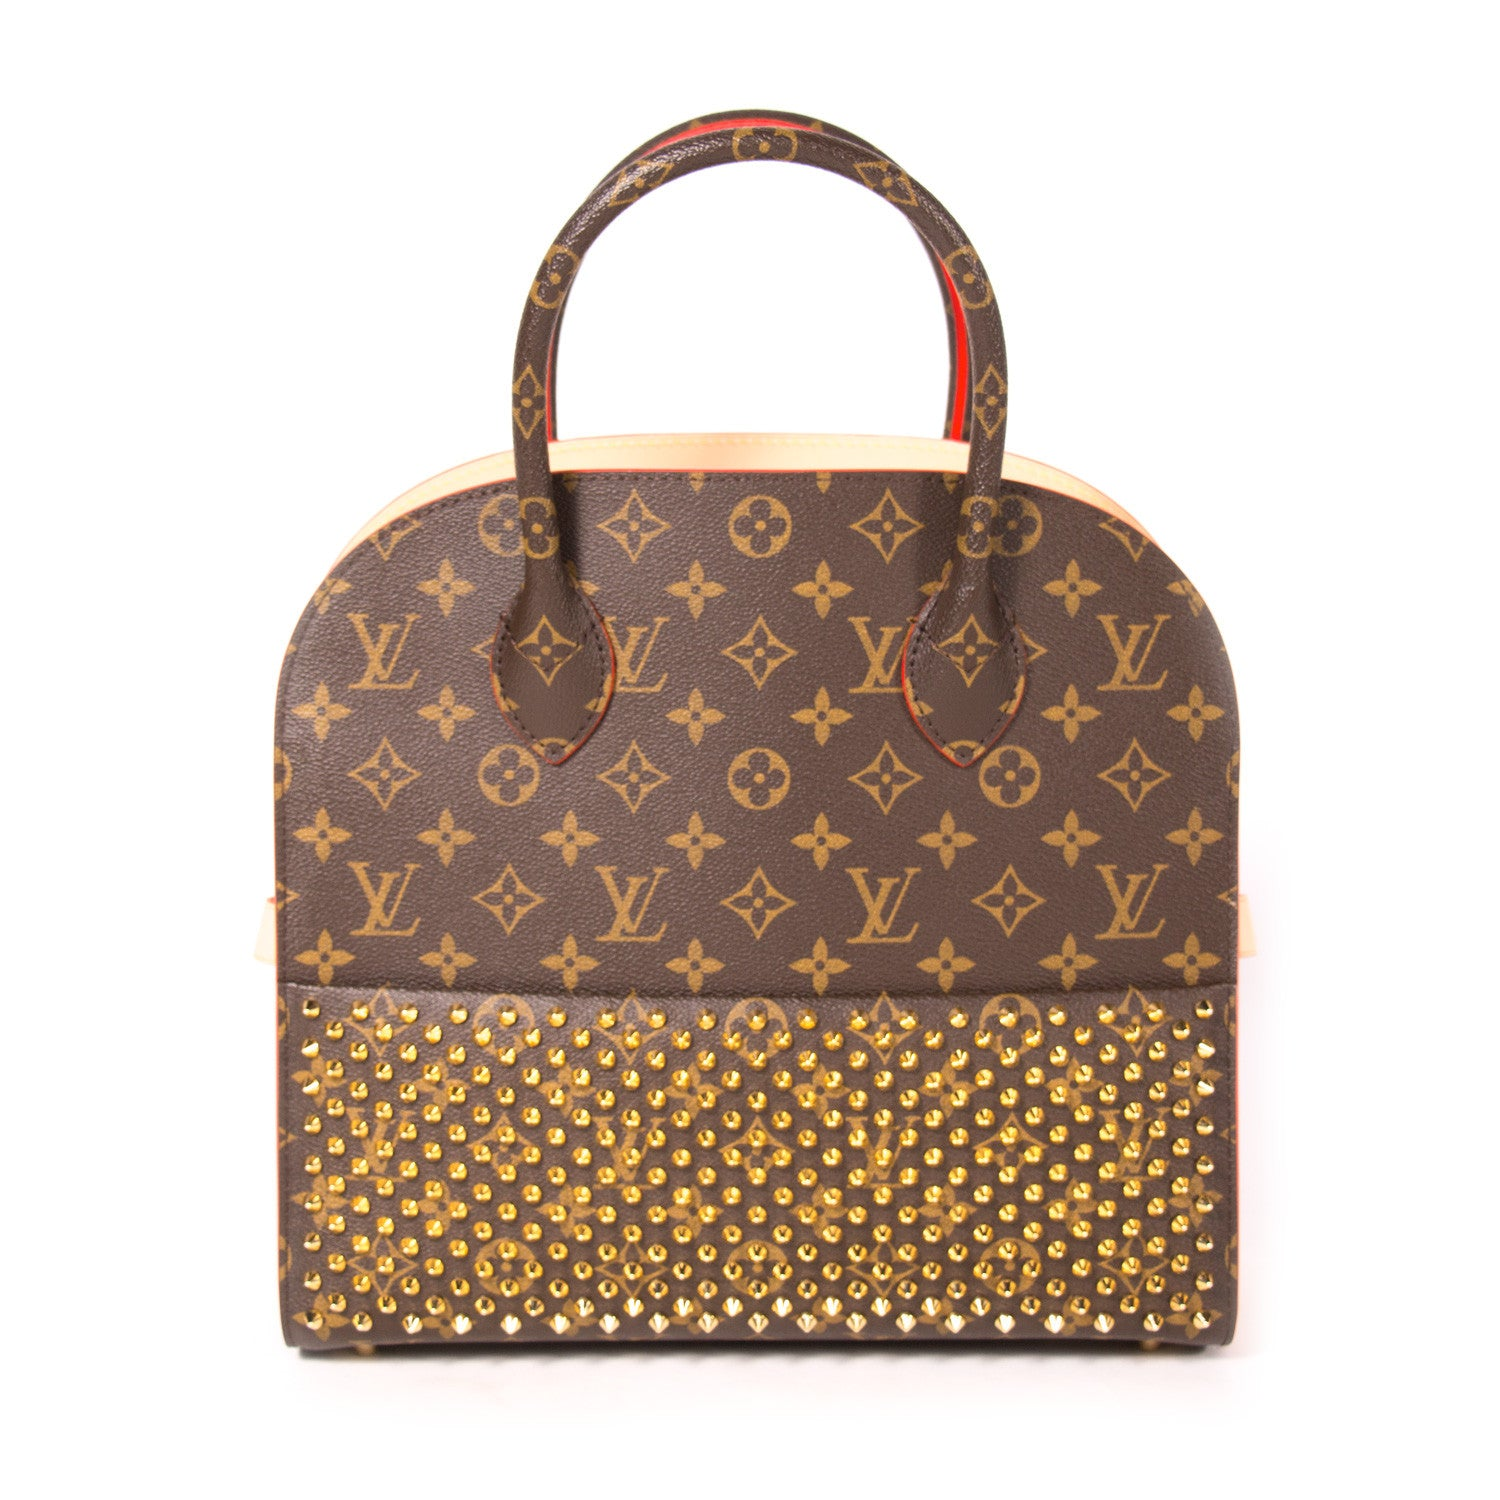 fdba63ccc78e Shop authentic Louis Vuitton Shopping Bag Christian Louboutin at revogue  for just USD 4